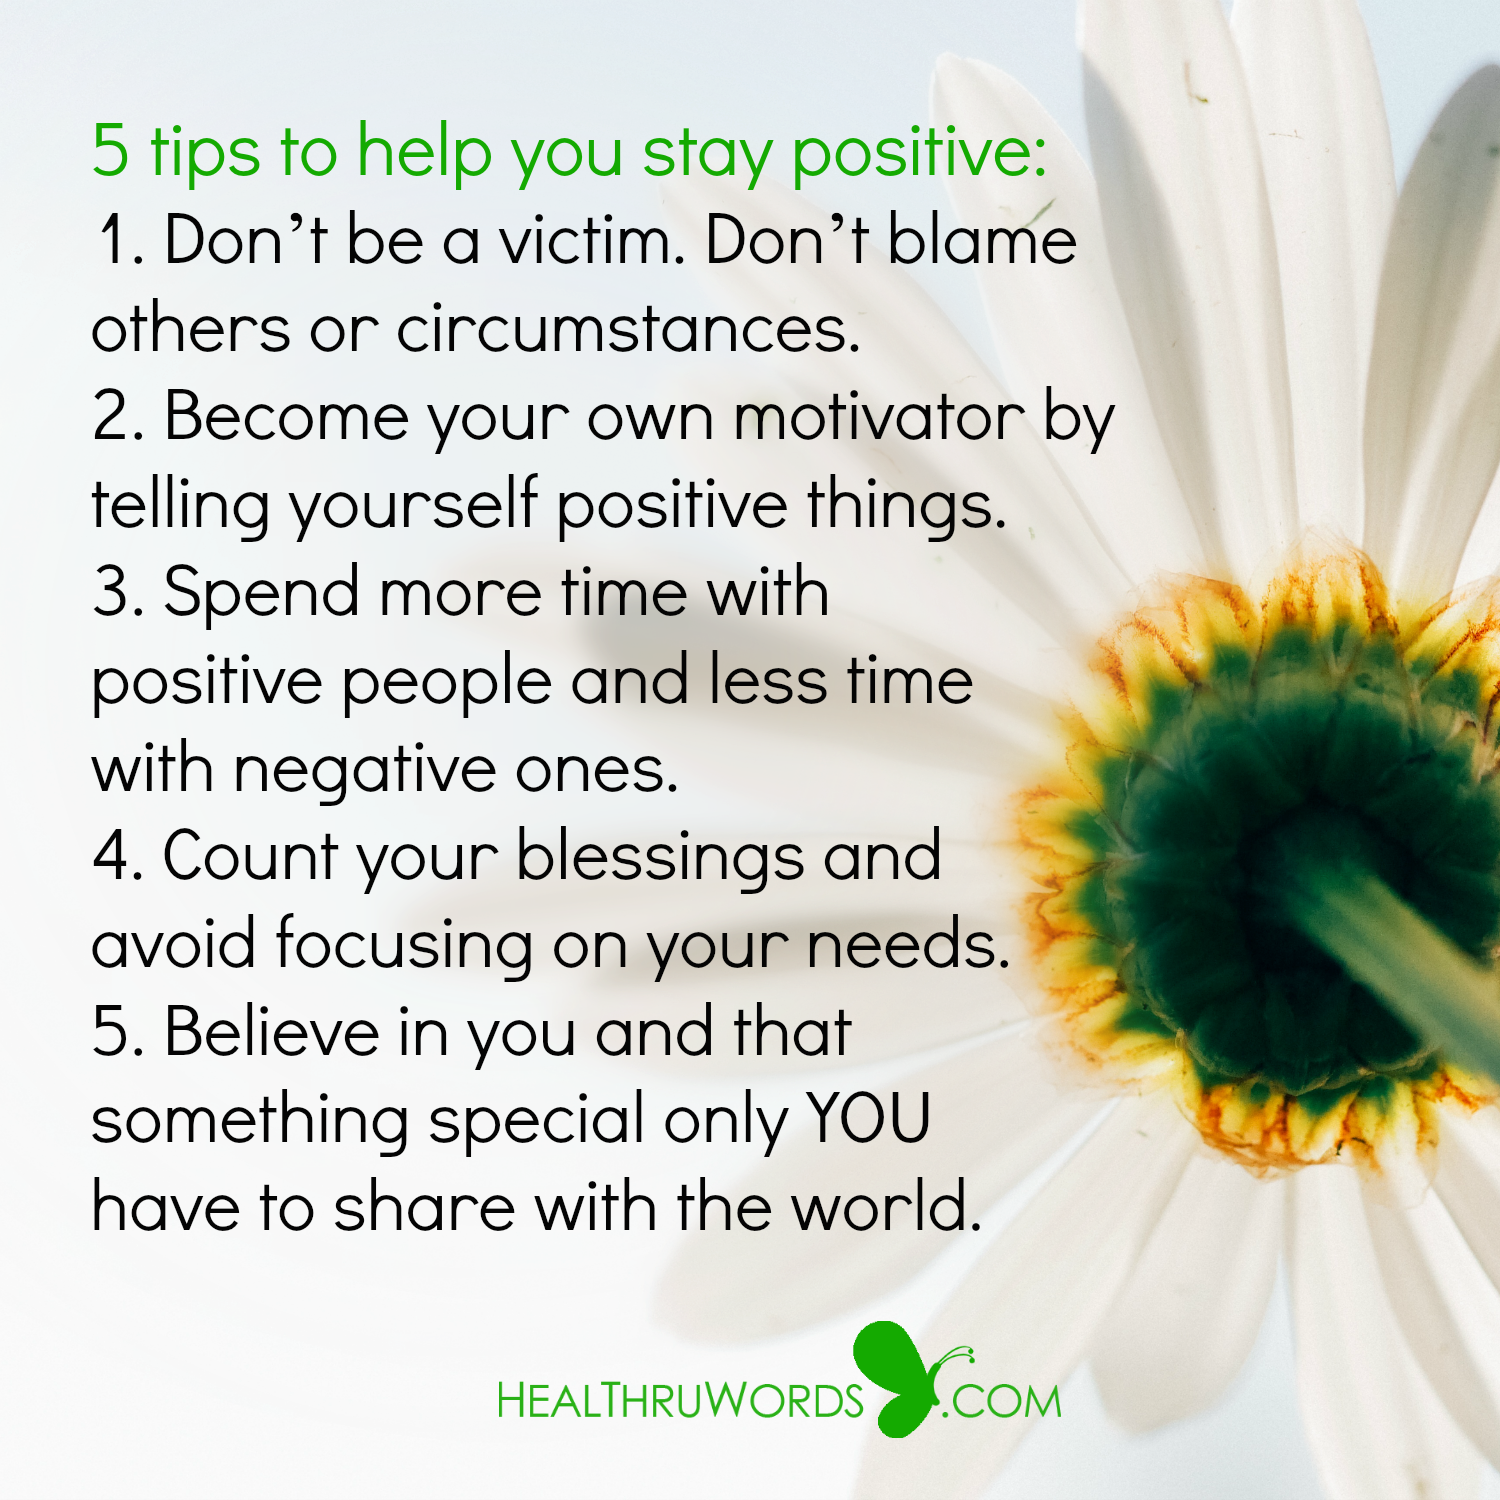 Inspirational Image: The Power of Staying Positive